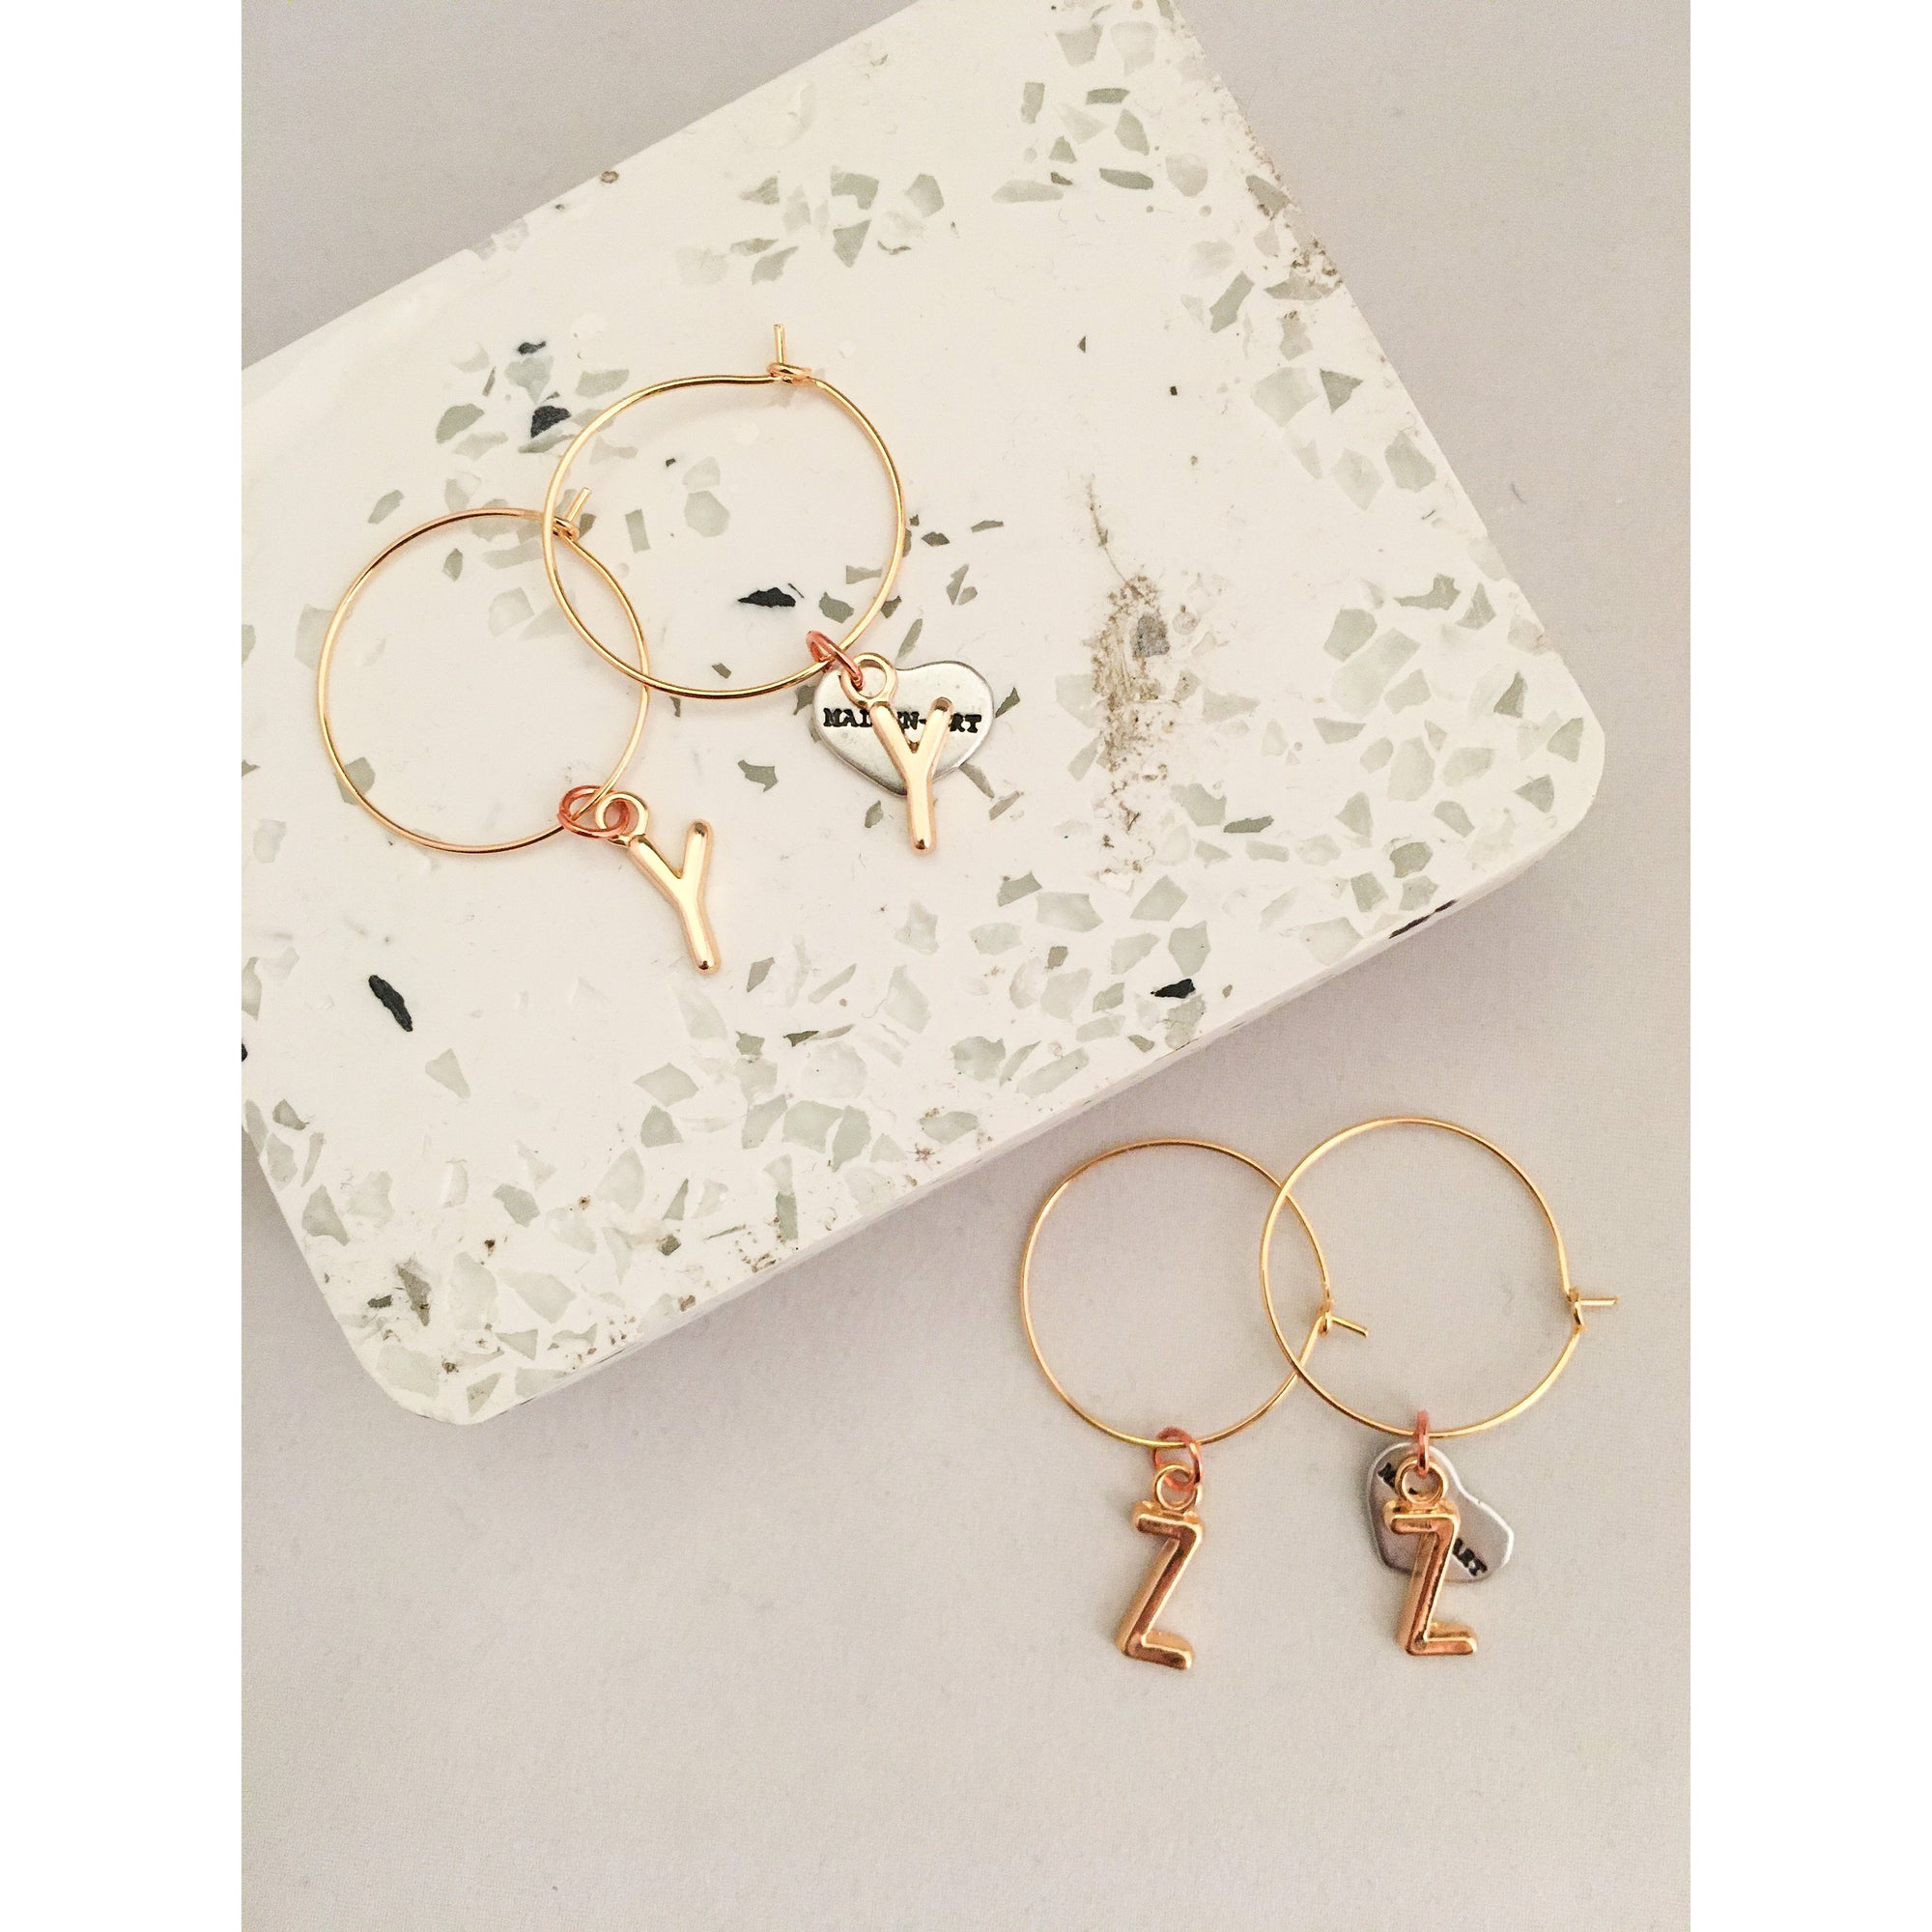 Initial Hoop Earrings Gold. Letter Hoop Earrings Gold - Miraposa